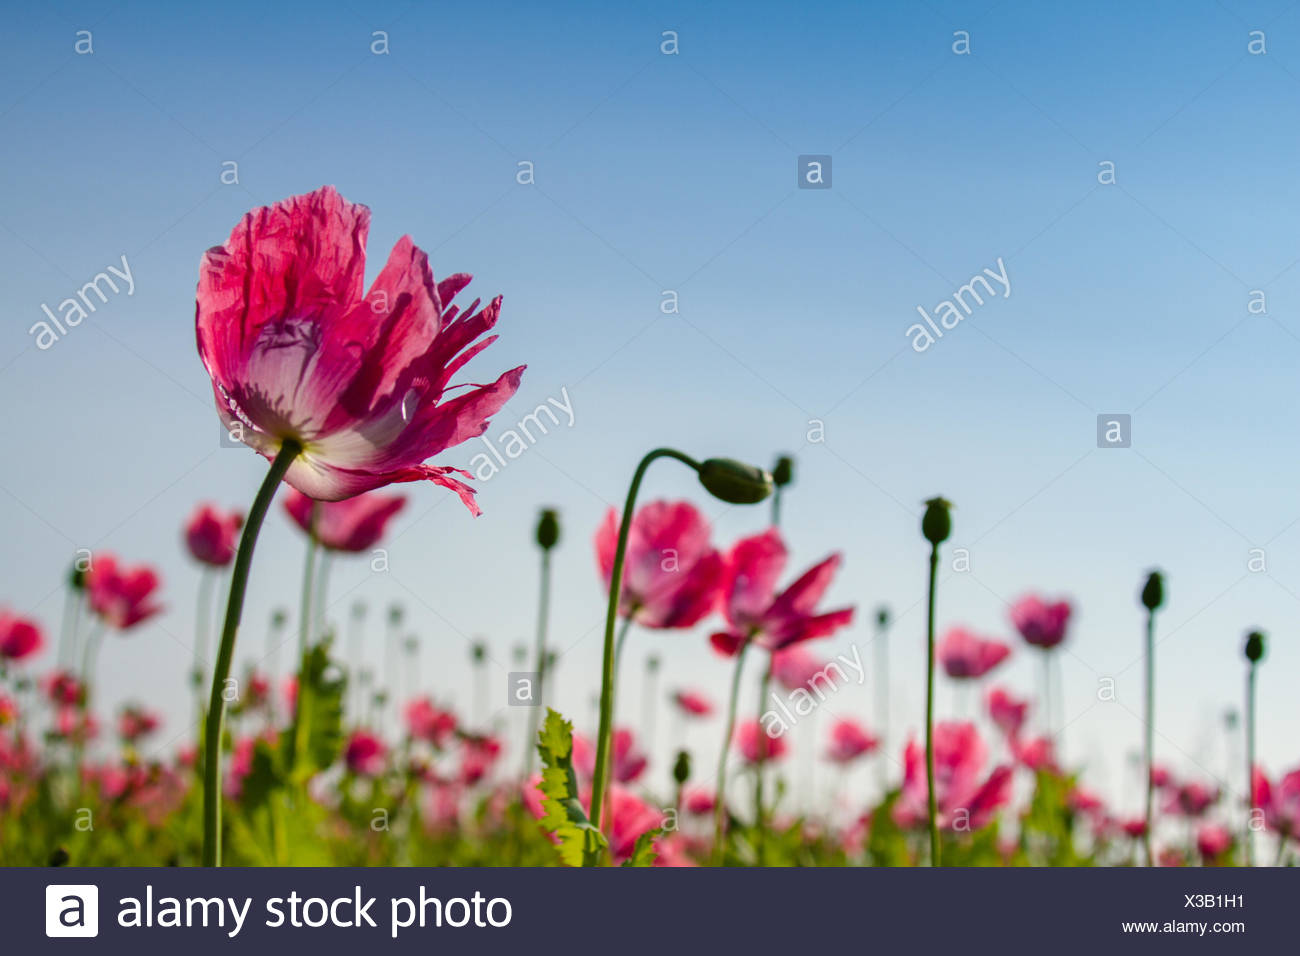 Opium poppy field Stock Photo